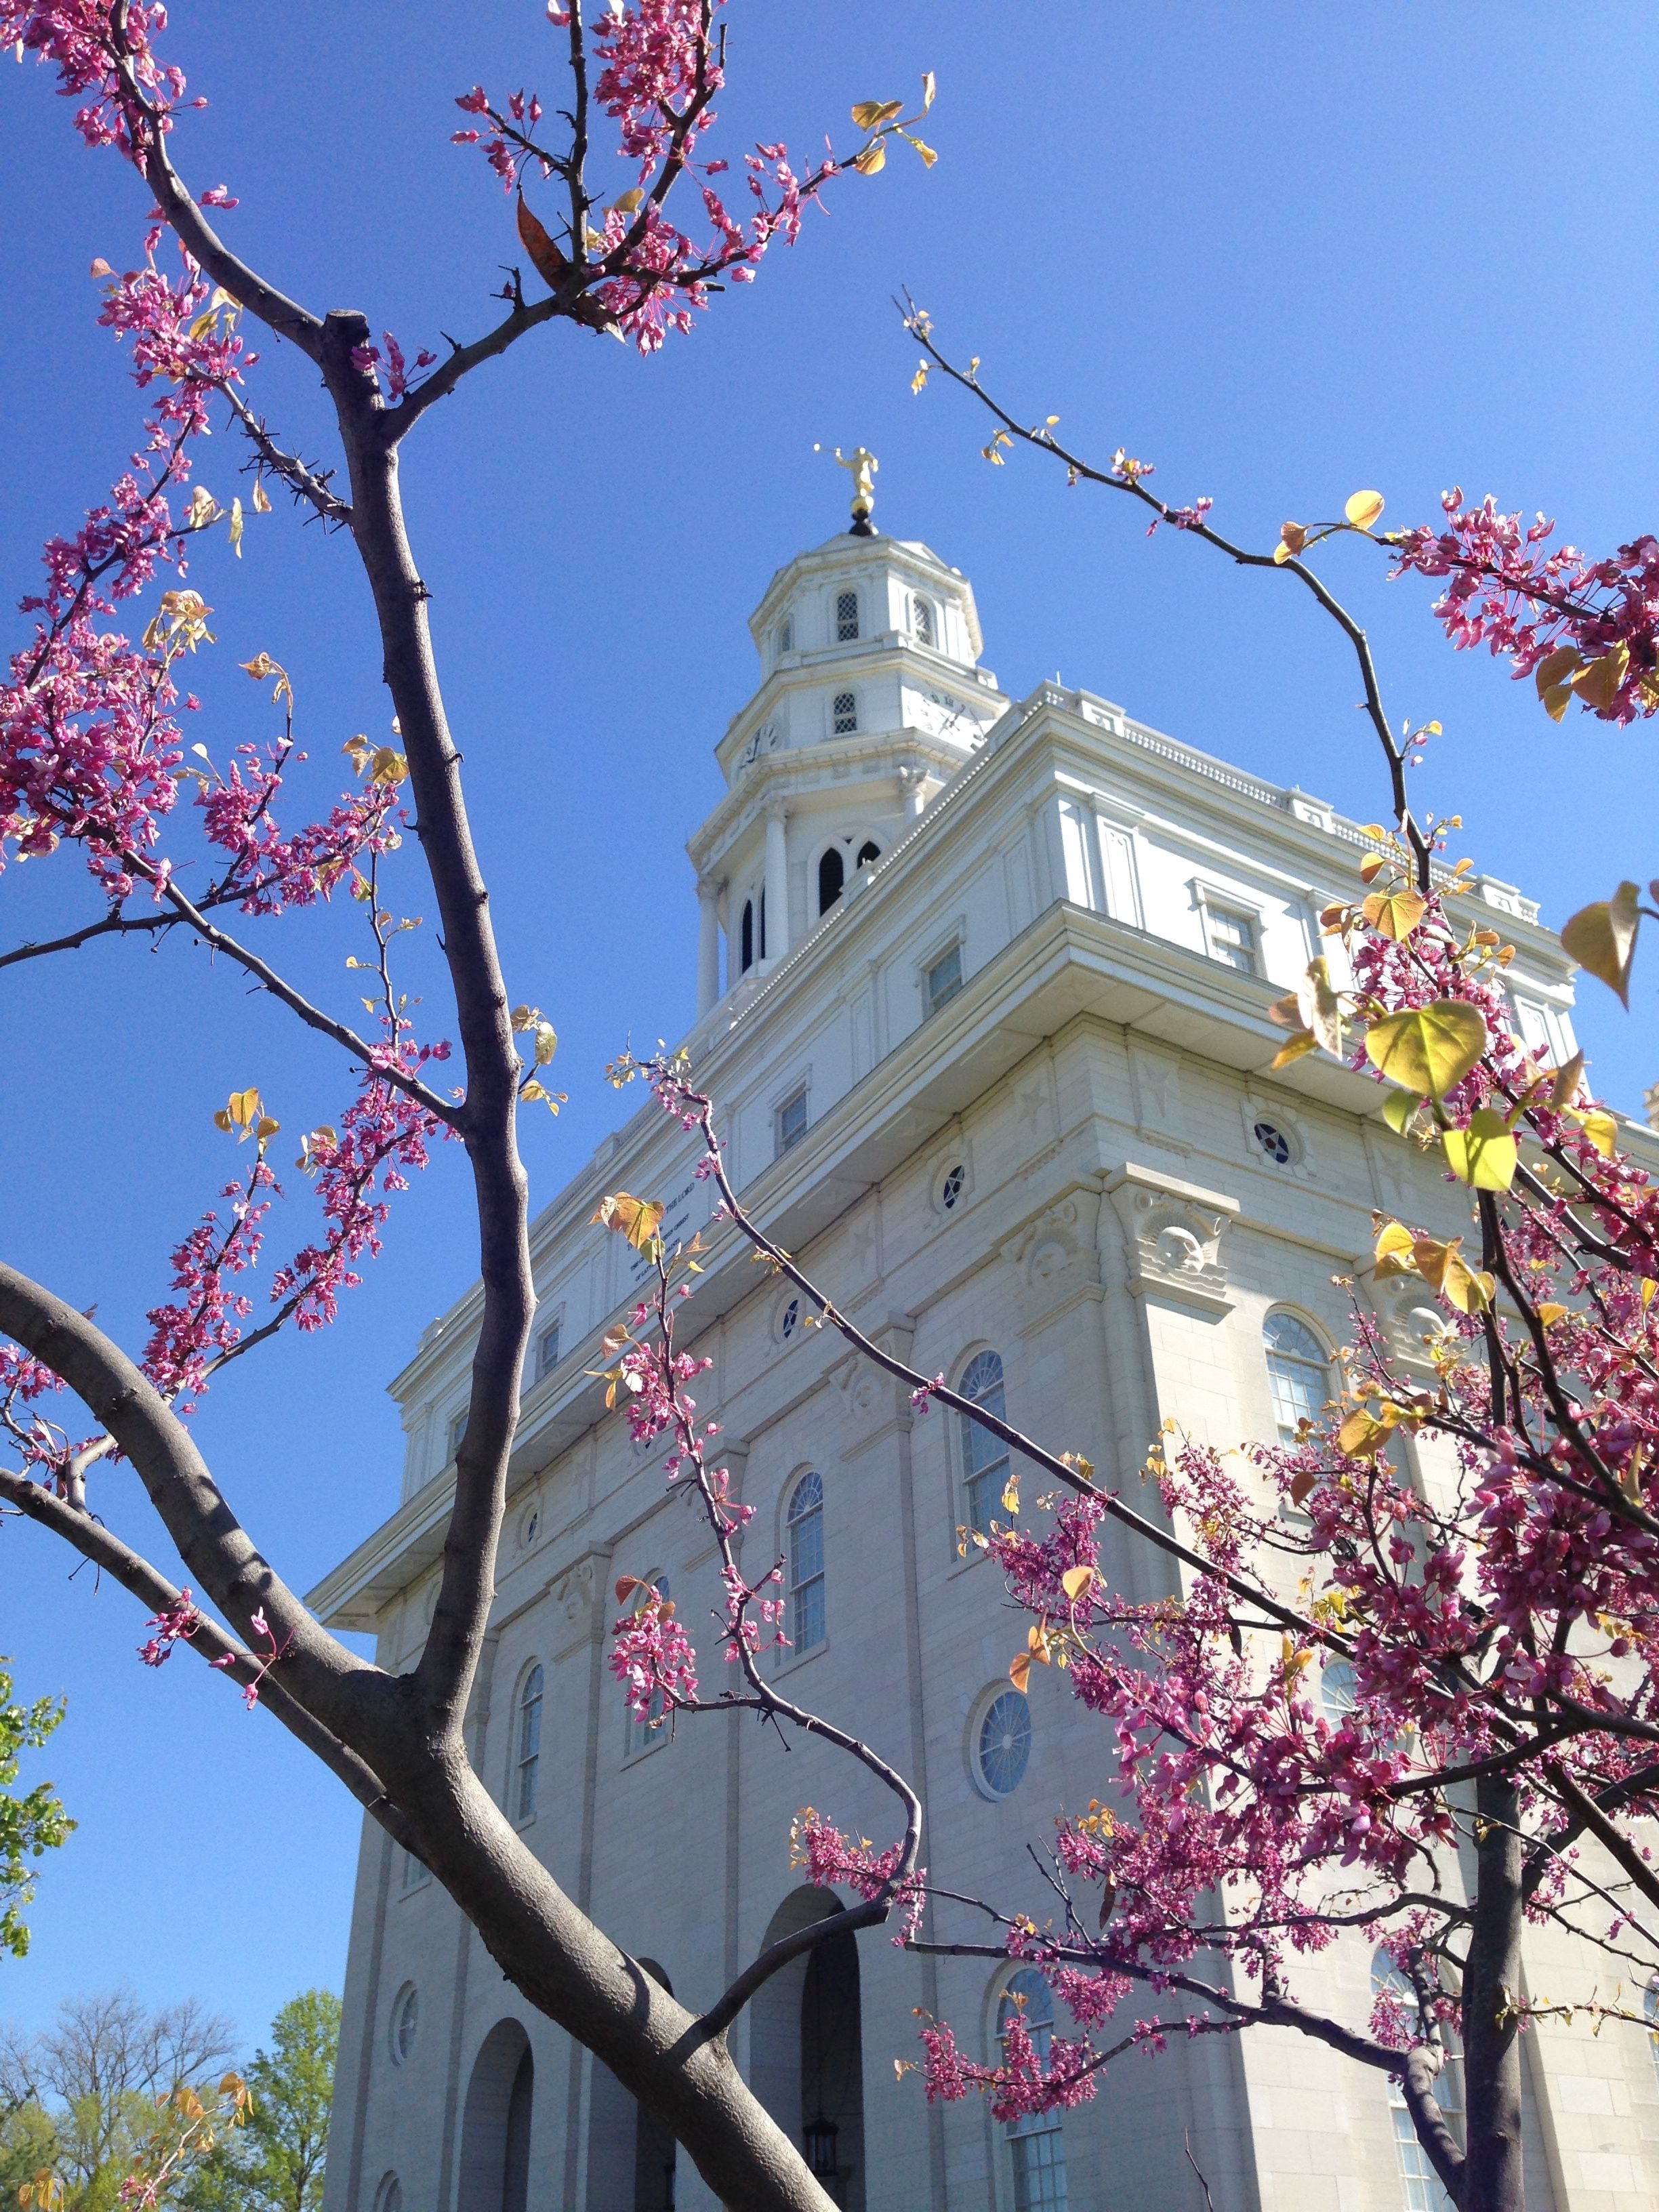 Spring in Nauvoo, Ill.